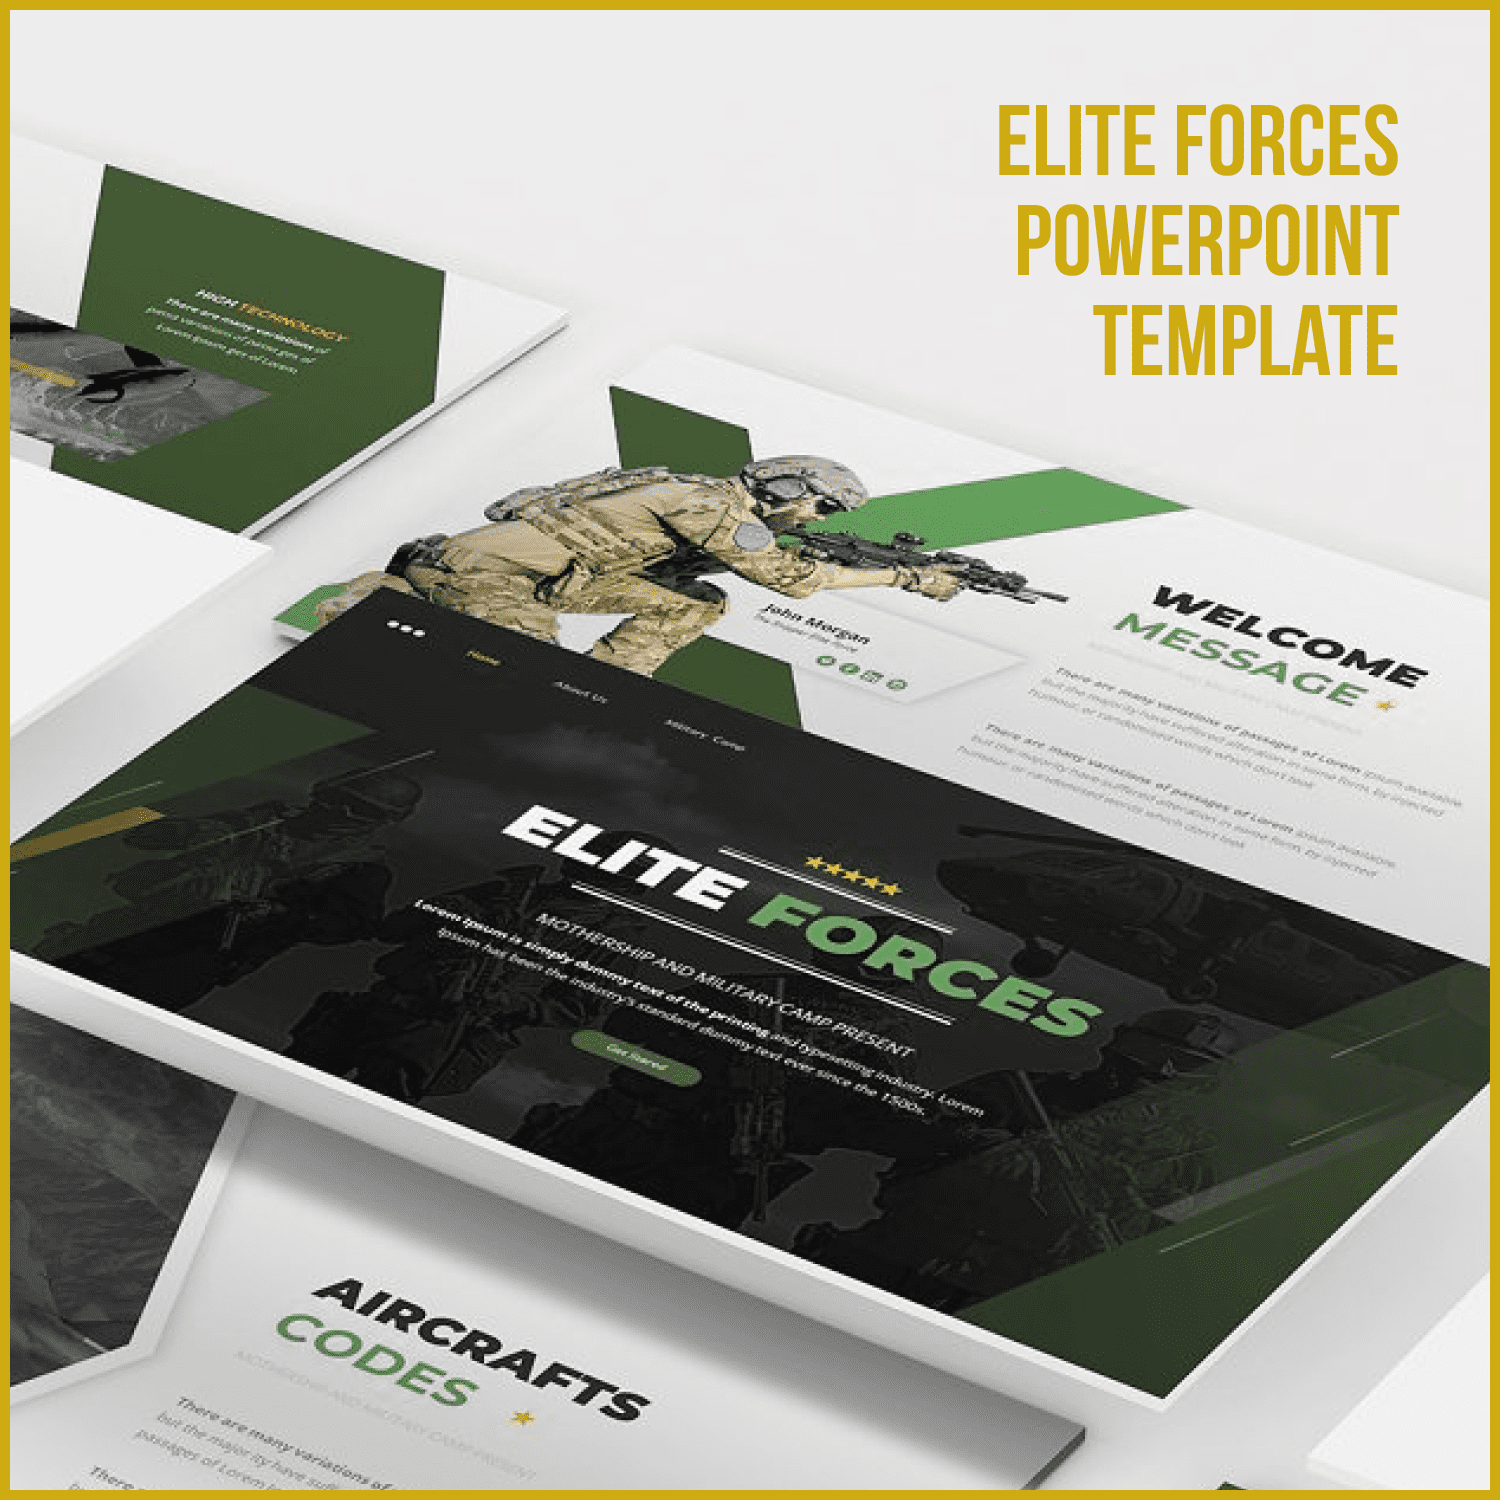 Elite Forces Powerpoint Template main cover.